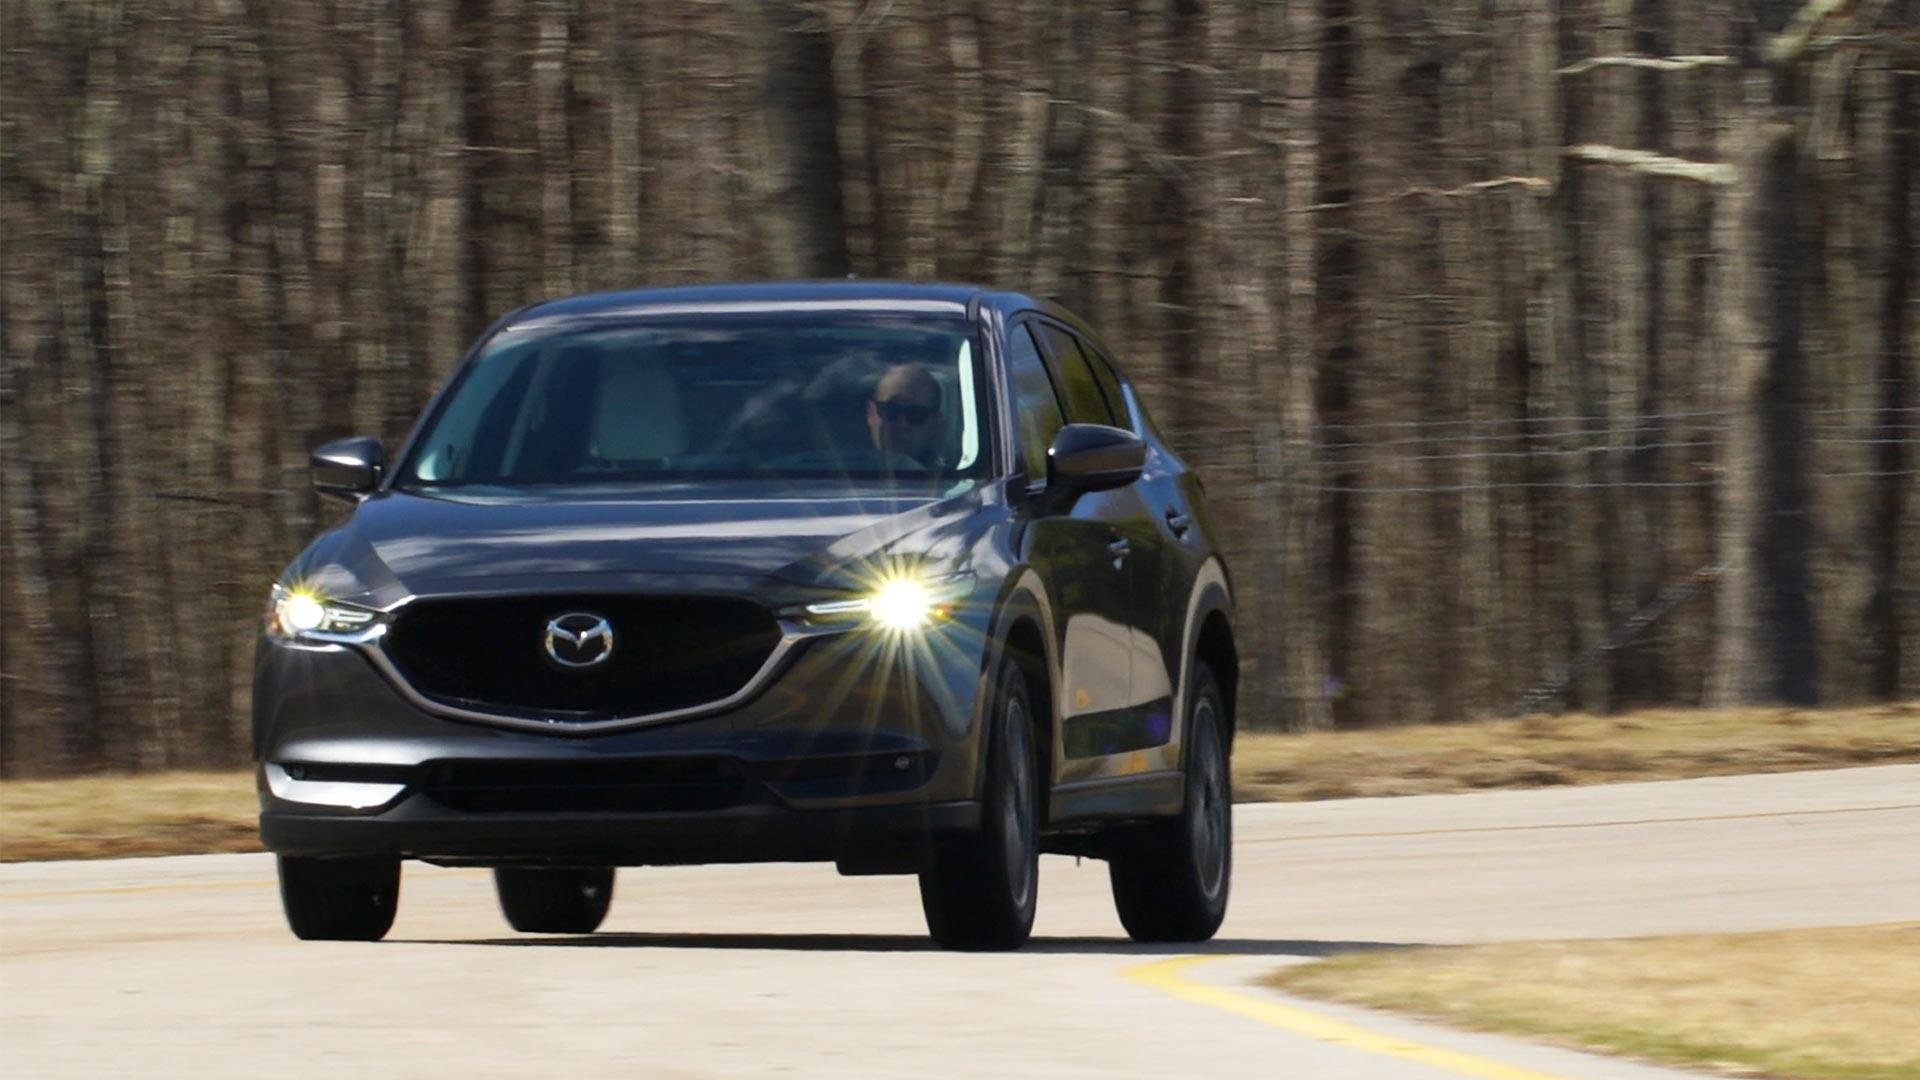 2019 Mazda Cx 5 Reviews Ratings Prices Consumer Reports